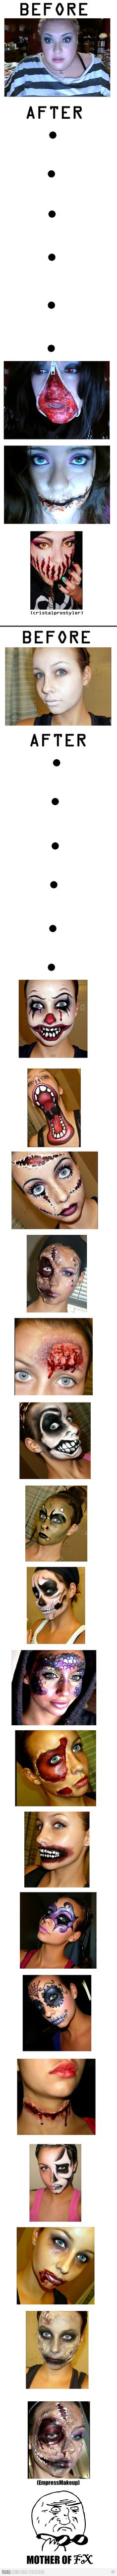 Awesome horror makeup